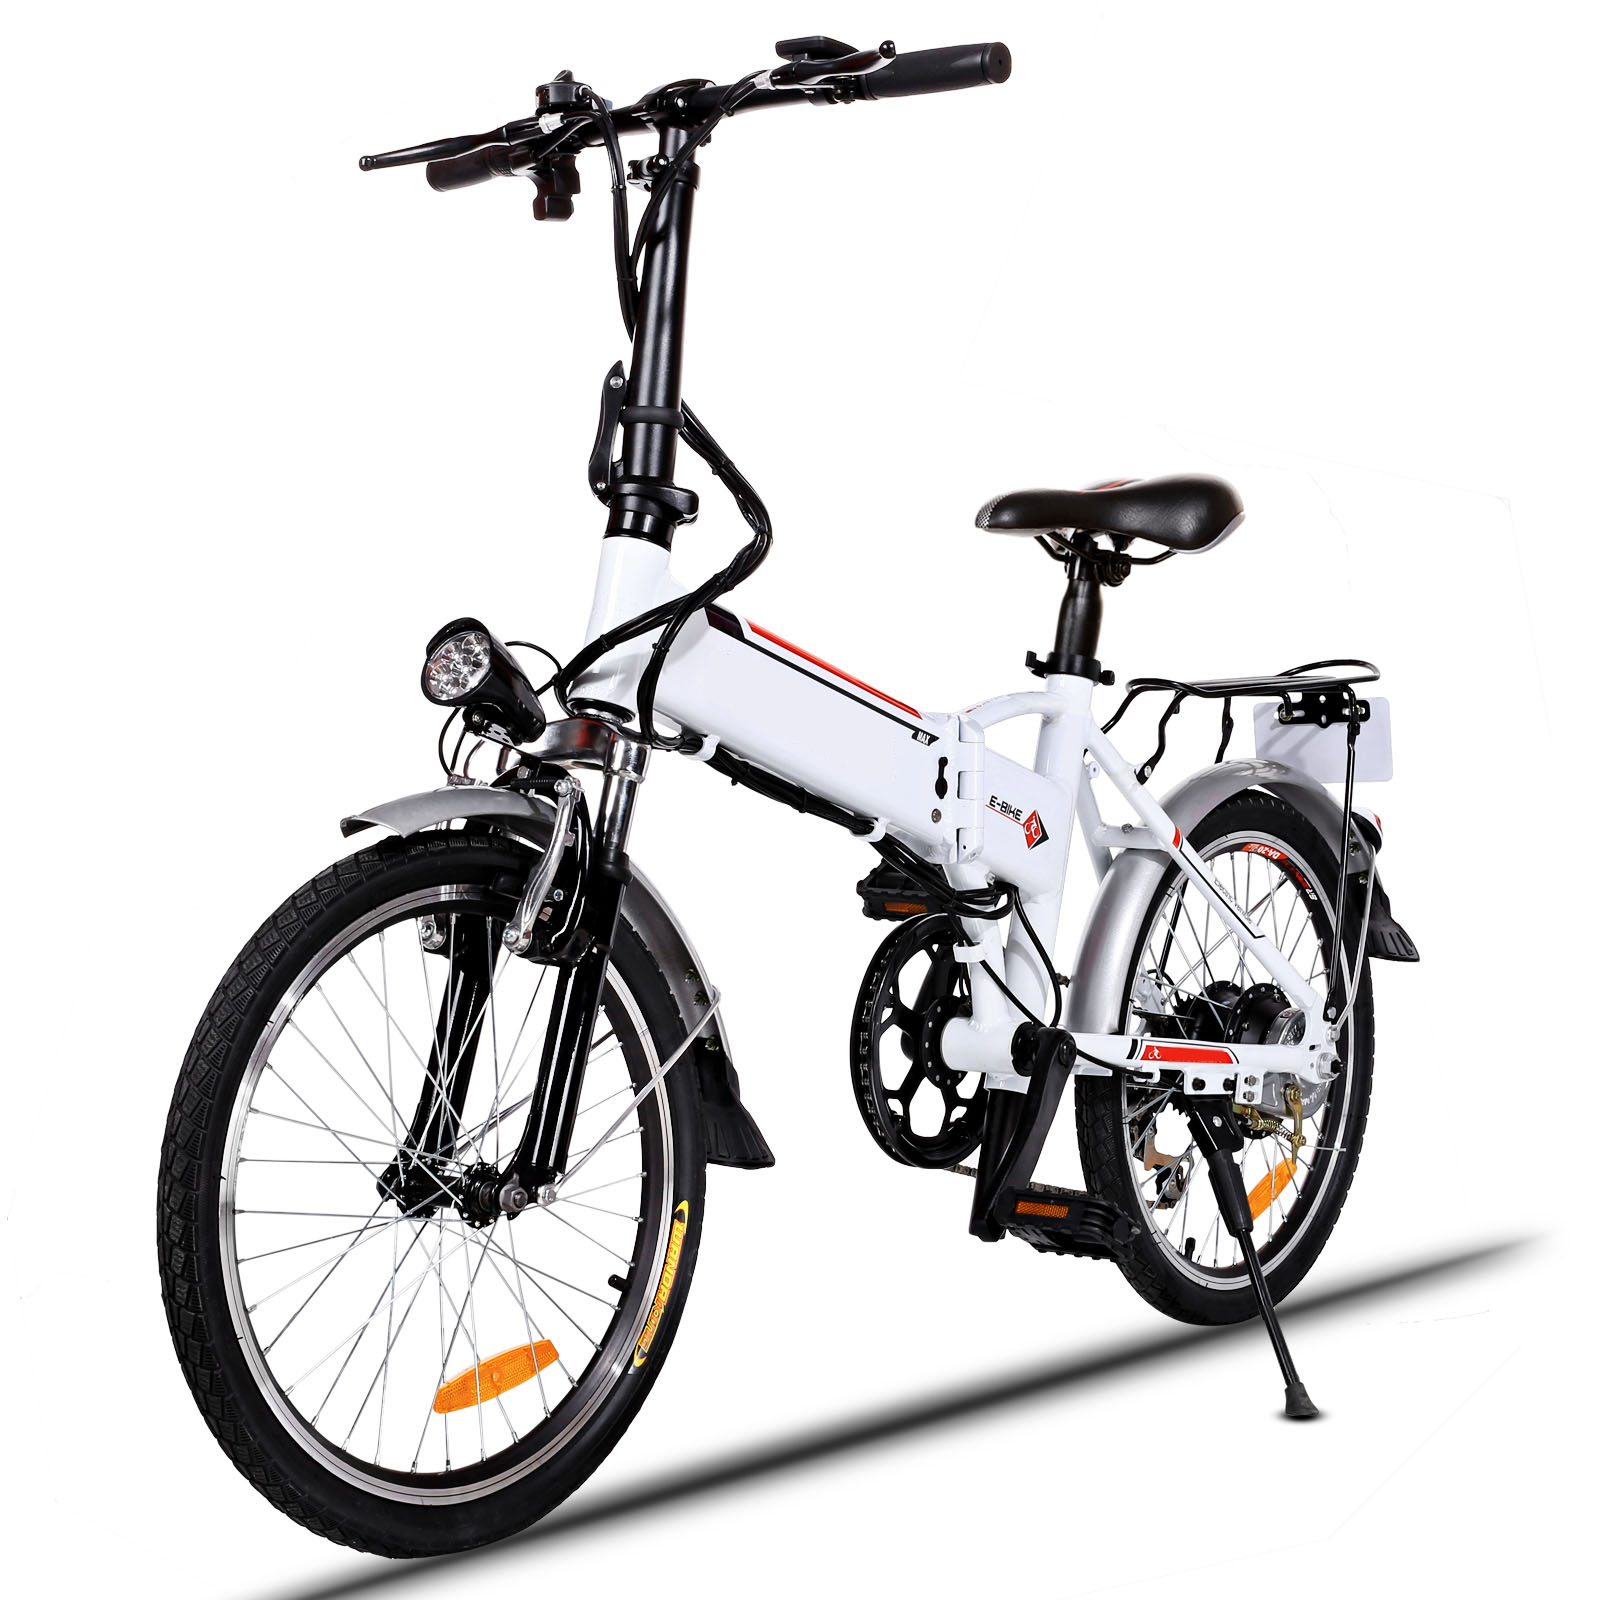 """Clearance&Sale! Hifashion 36V 250W Foldable Bike Electric Bike 18.7"""" Adjustable Mountain Bicycle with Smart Lithium Battery"""